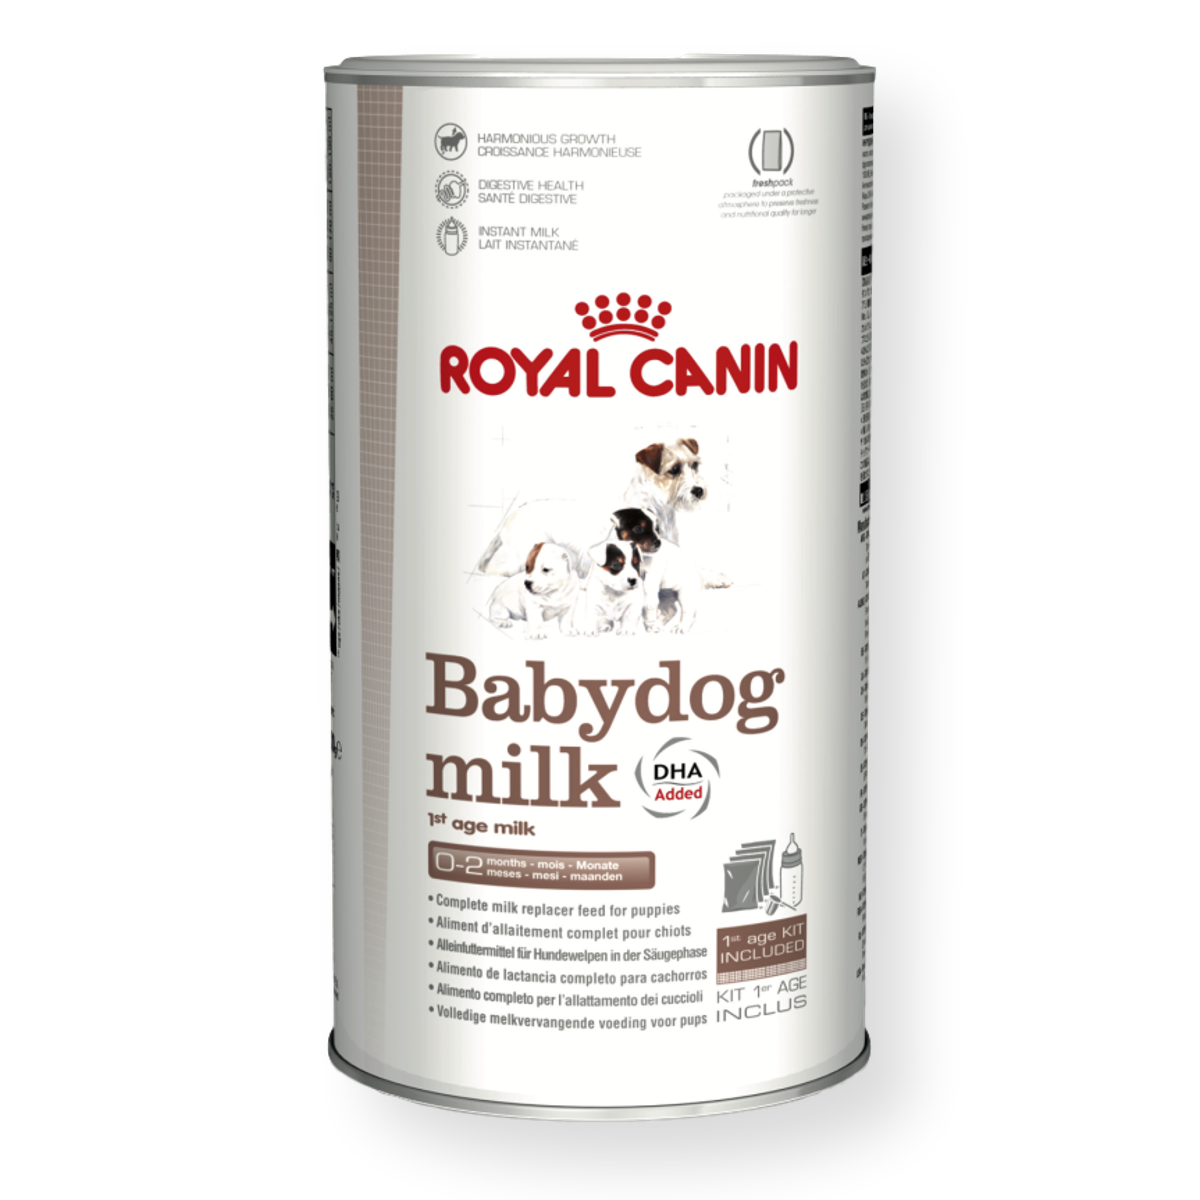 Baby Milk, Royal Canin